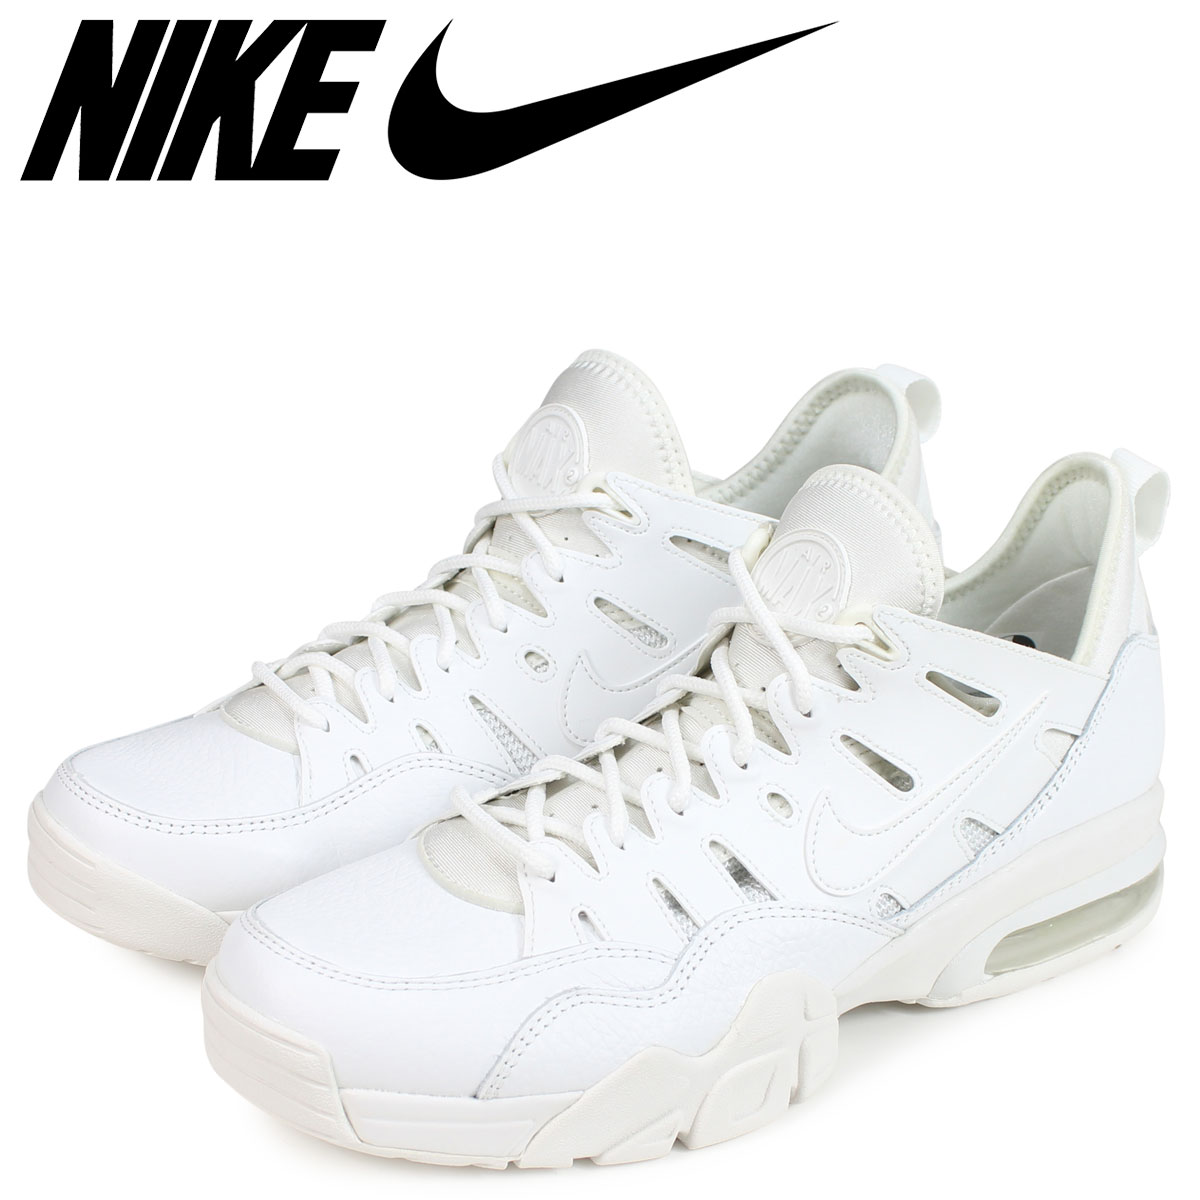 6c9dce38f9044 NIKE Nike air trainer max 94 sneakers men AIR TRAINER MAX 94 LOW white  white 880,995-100